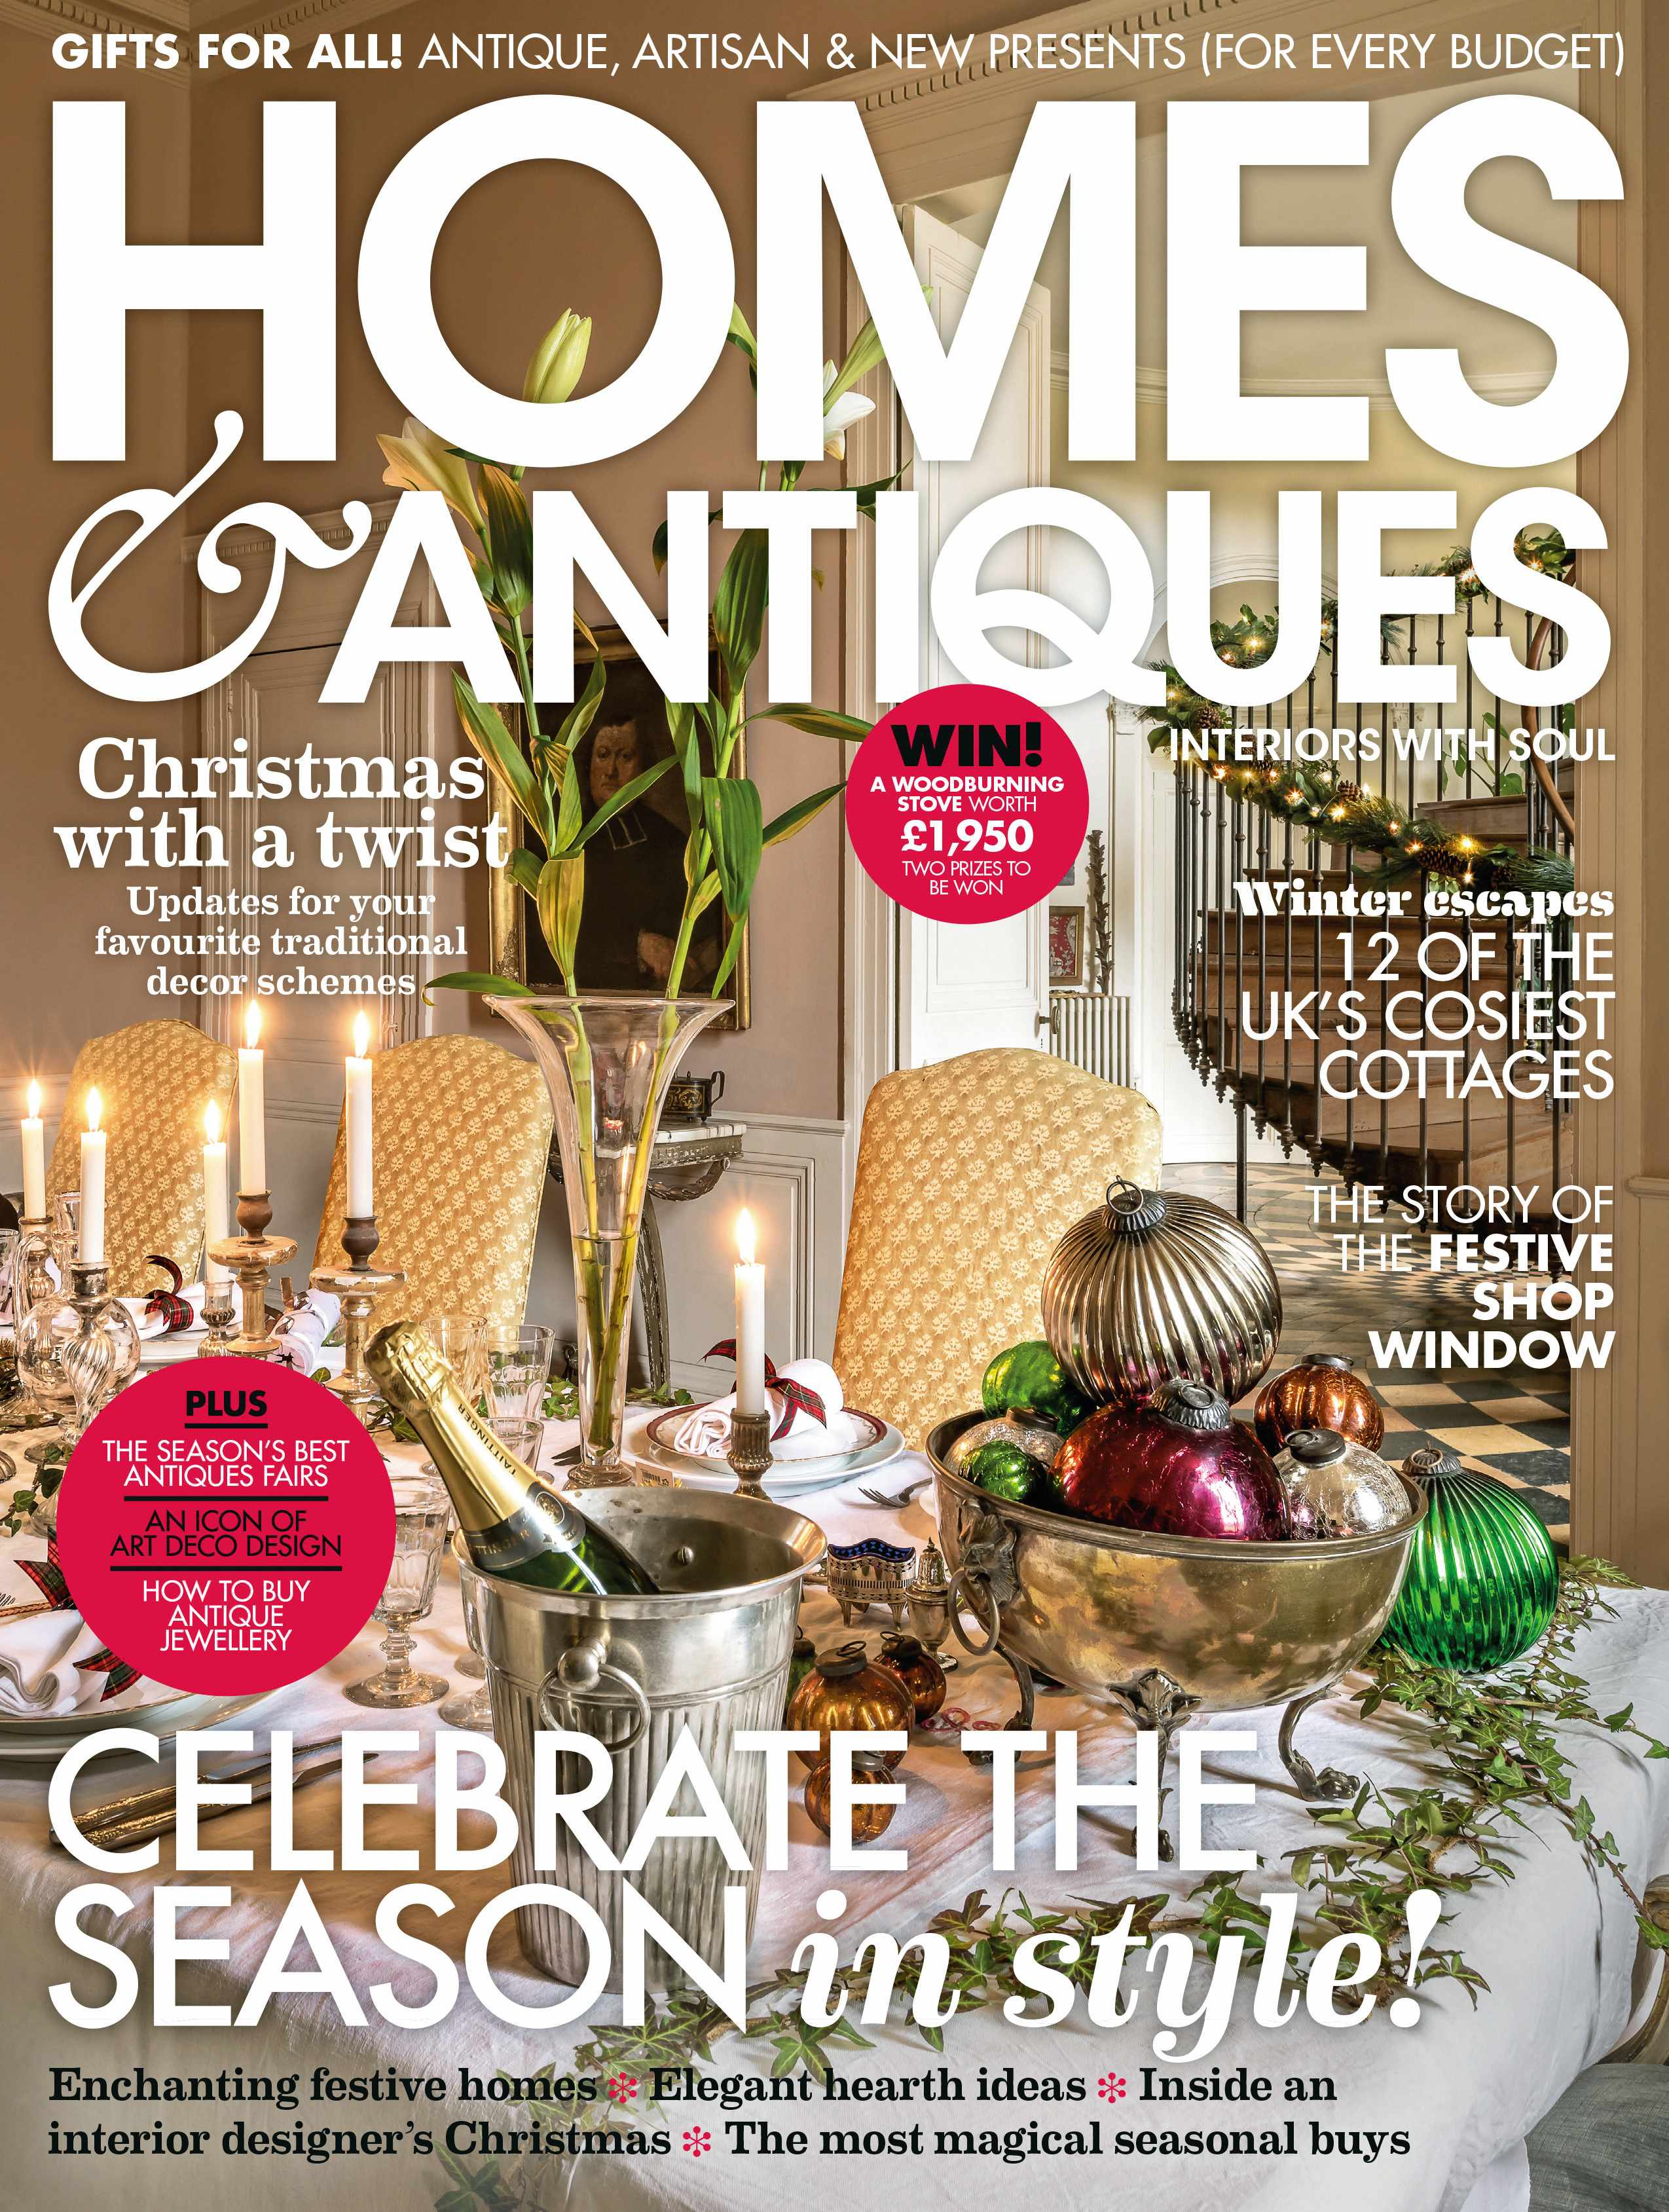 Homes & Antiques magazine December 2018 cover